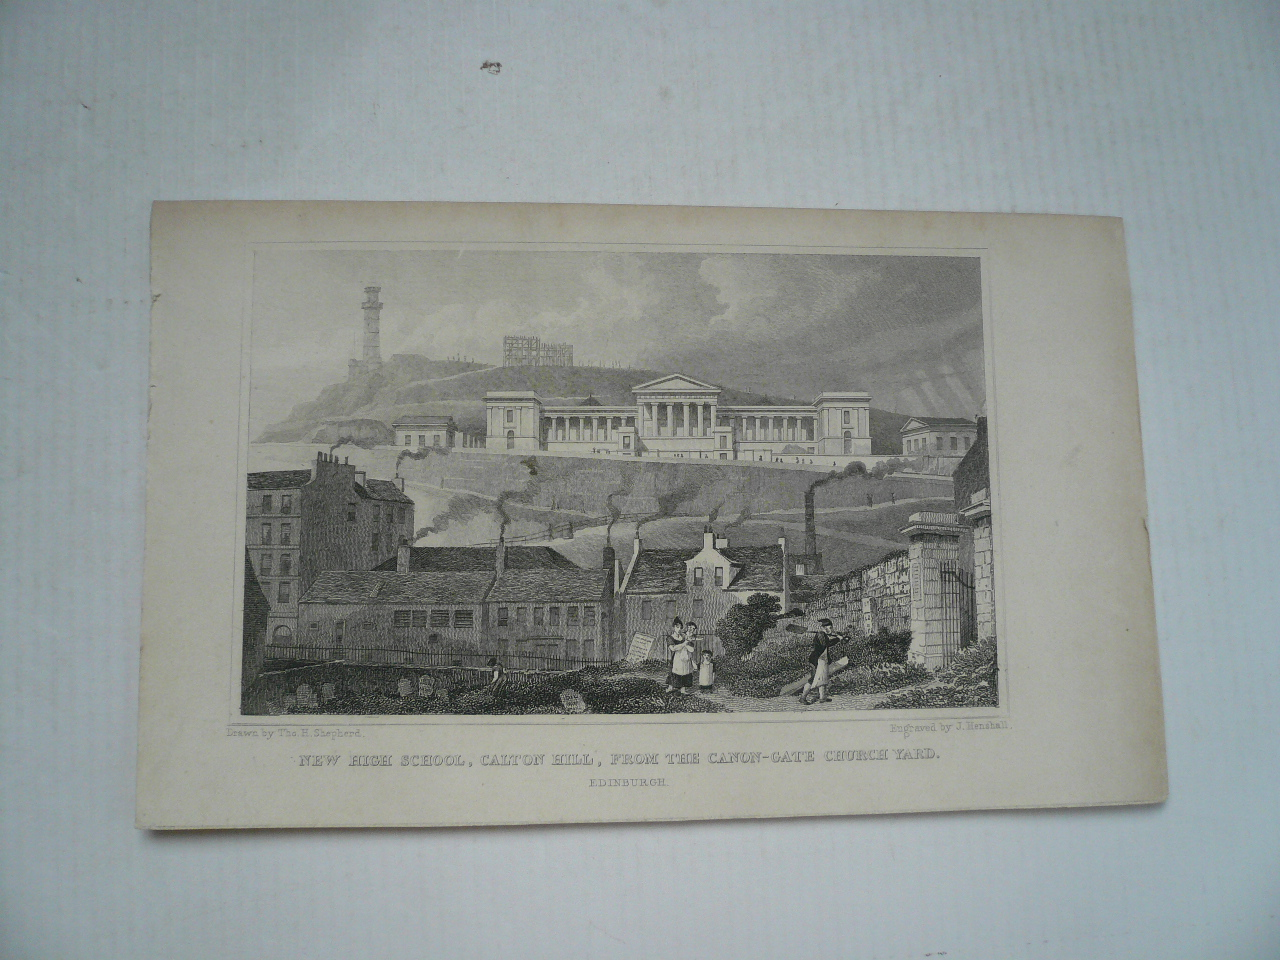 Edinburgh, anno 1850, steelengraving, New High School